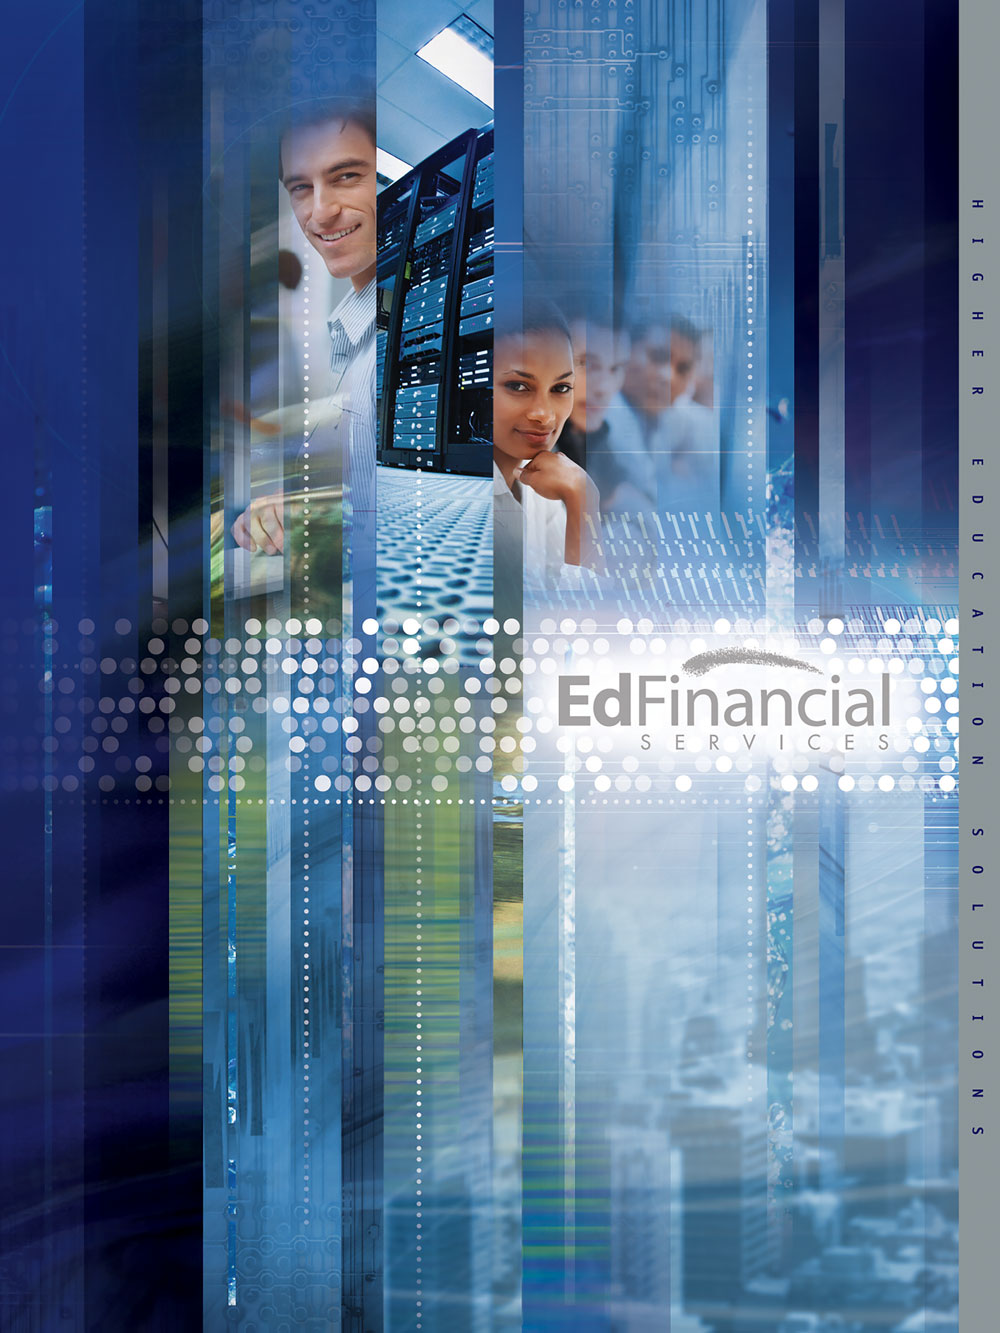 EdFinancial_Consulting_Services_Insert.jpg